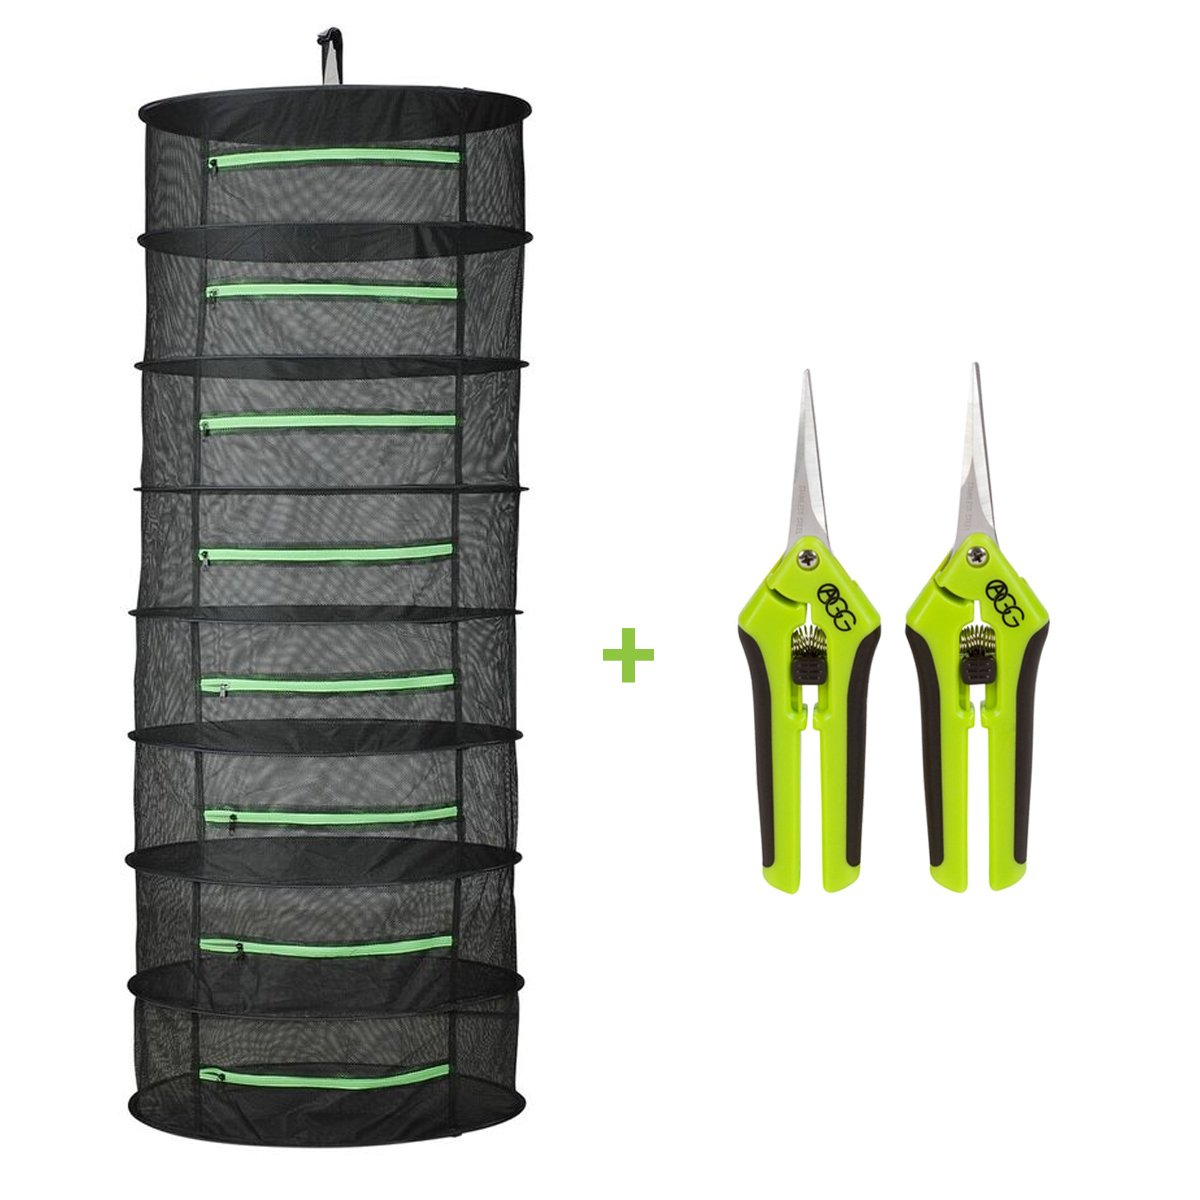 Active Gear Guy Enclosed Hanging Mesh Dry Rack for Herbs, Buds, and Fruit with Two Trim Scissors. One Straight Blade and One Curved Blade. For Gardens, Hydroponics, Orchards, and Grow Tents.